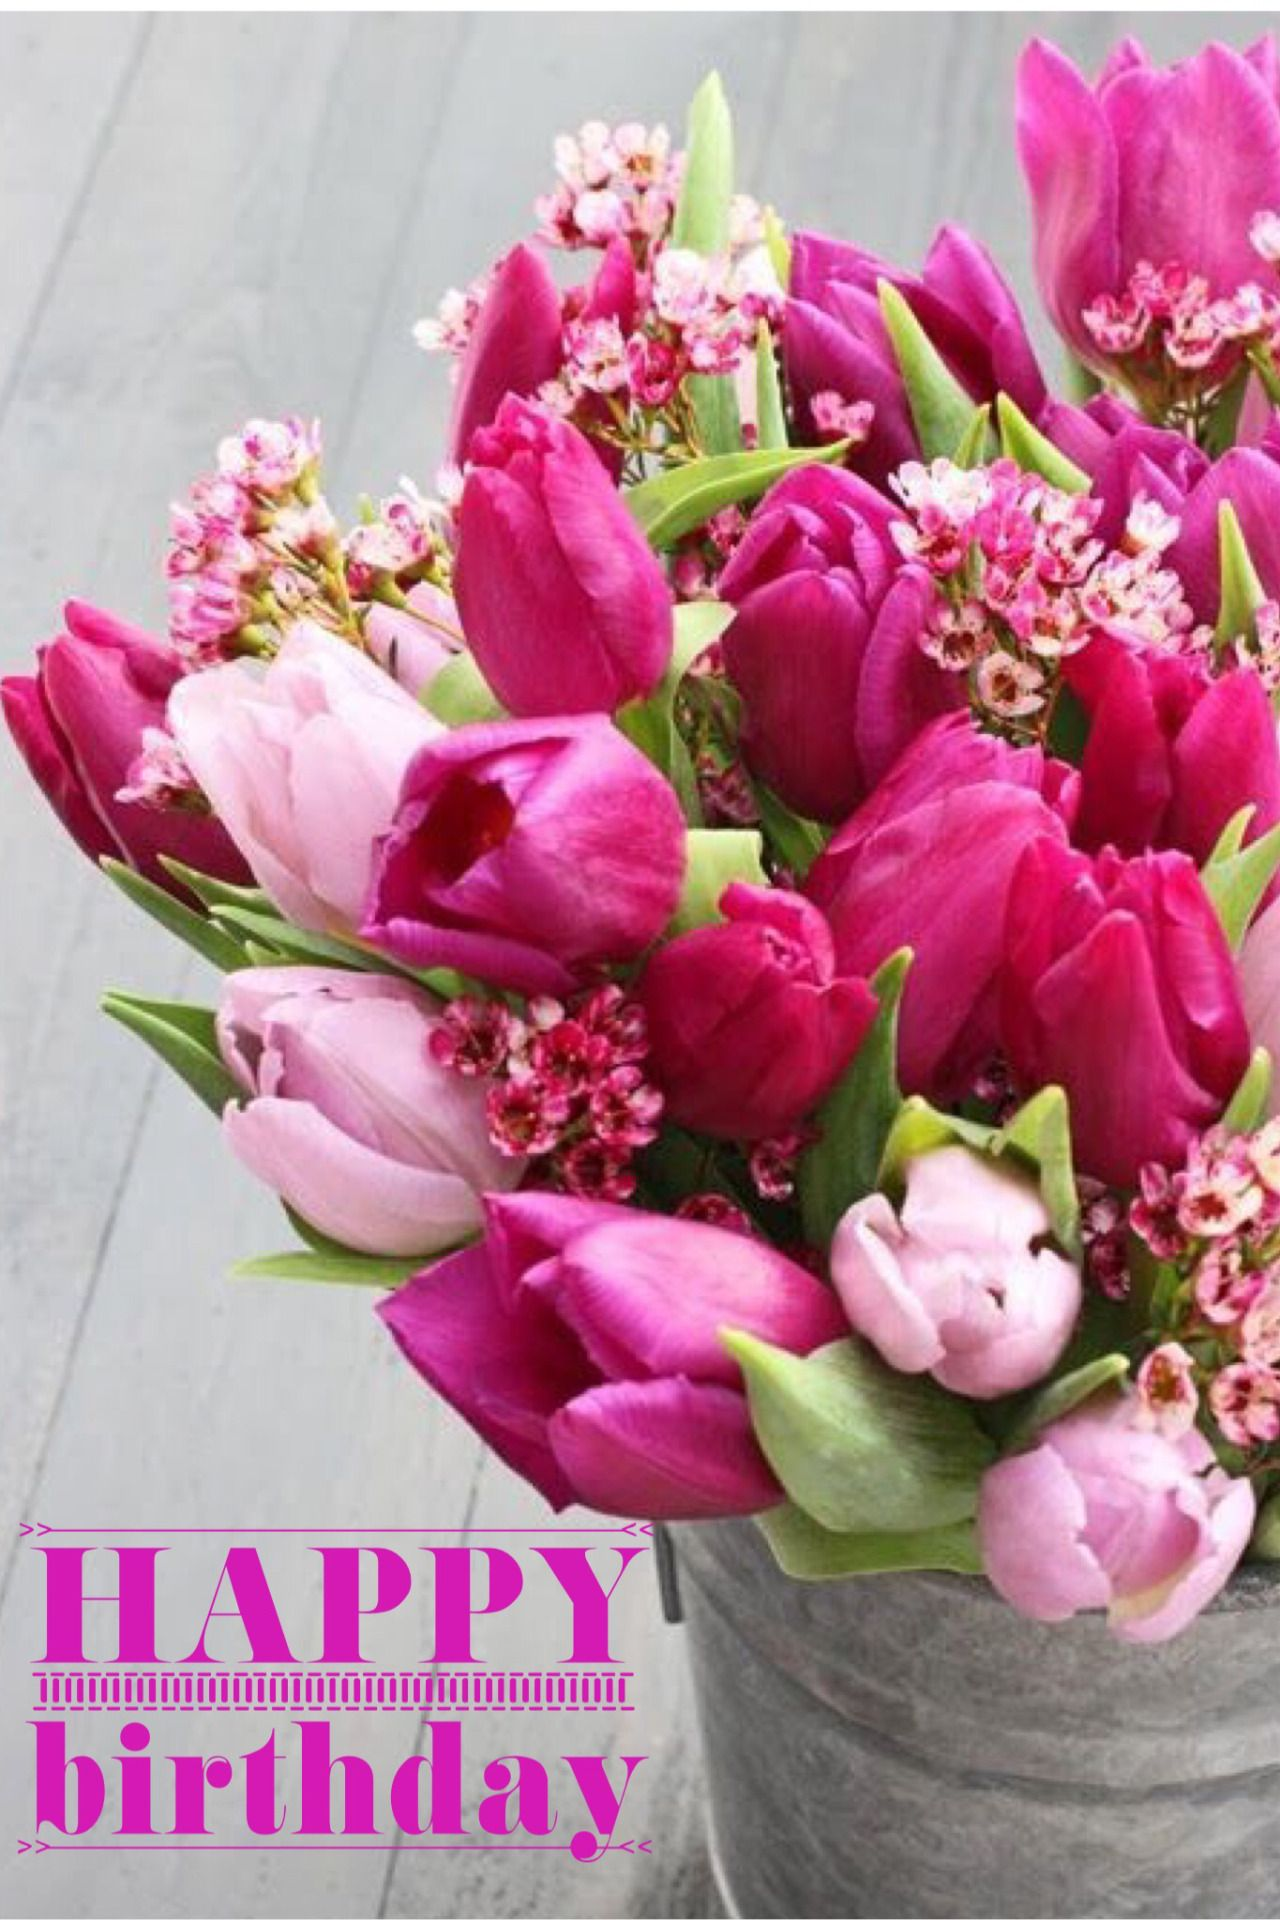 Happy Birthday Pink Bucket Tulip Bday In 2018 Pinterest